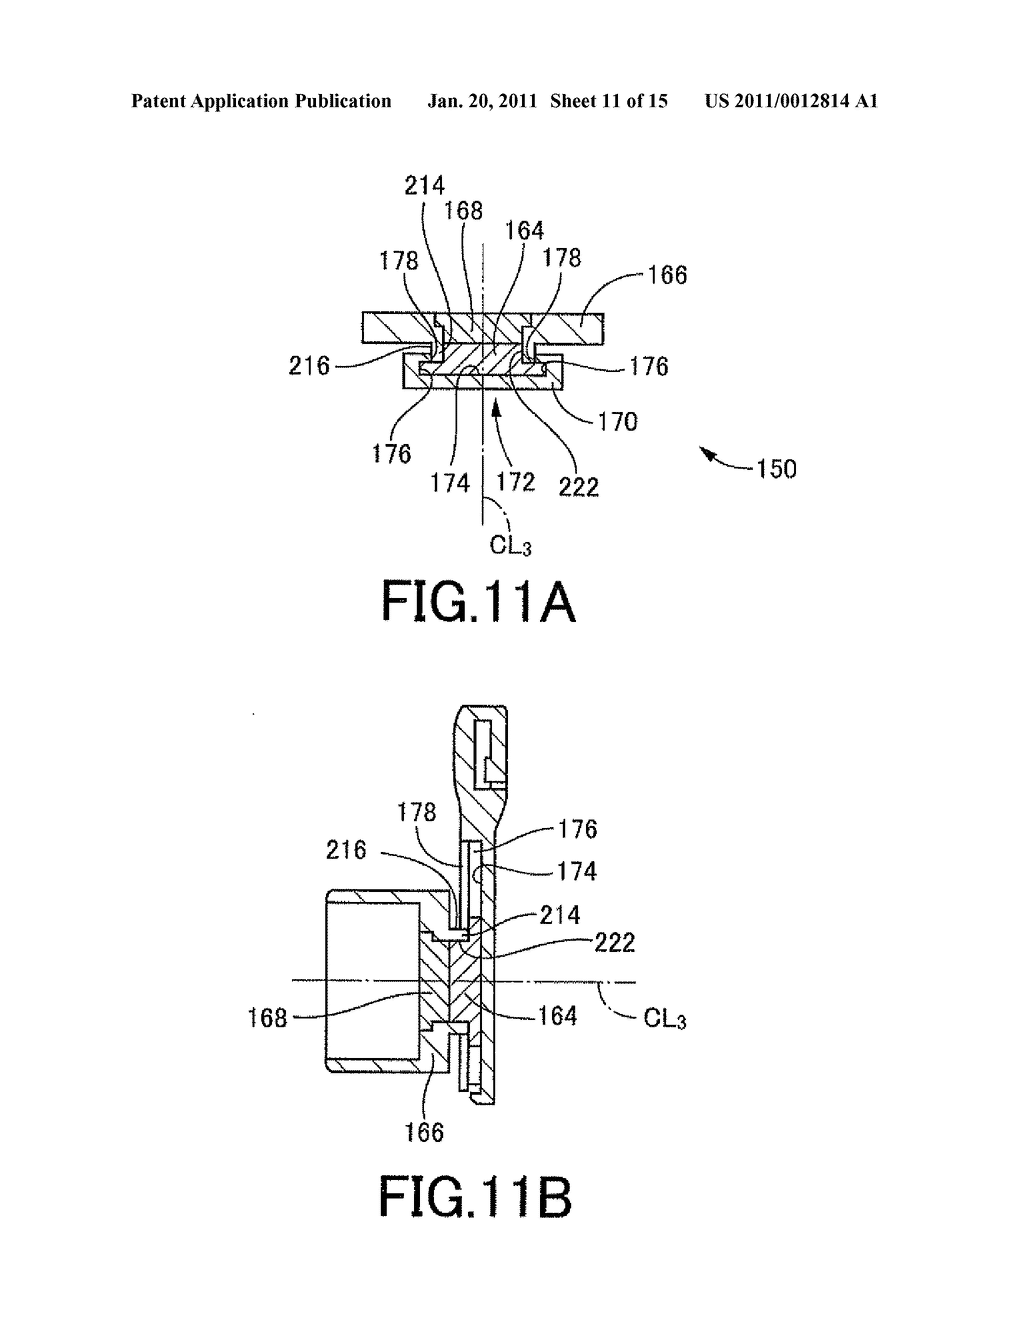 Adjustable Attachment for Attaching Head-Mounted Display to Eyeglasses-Type Frame - diagram, schematic, and image 12